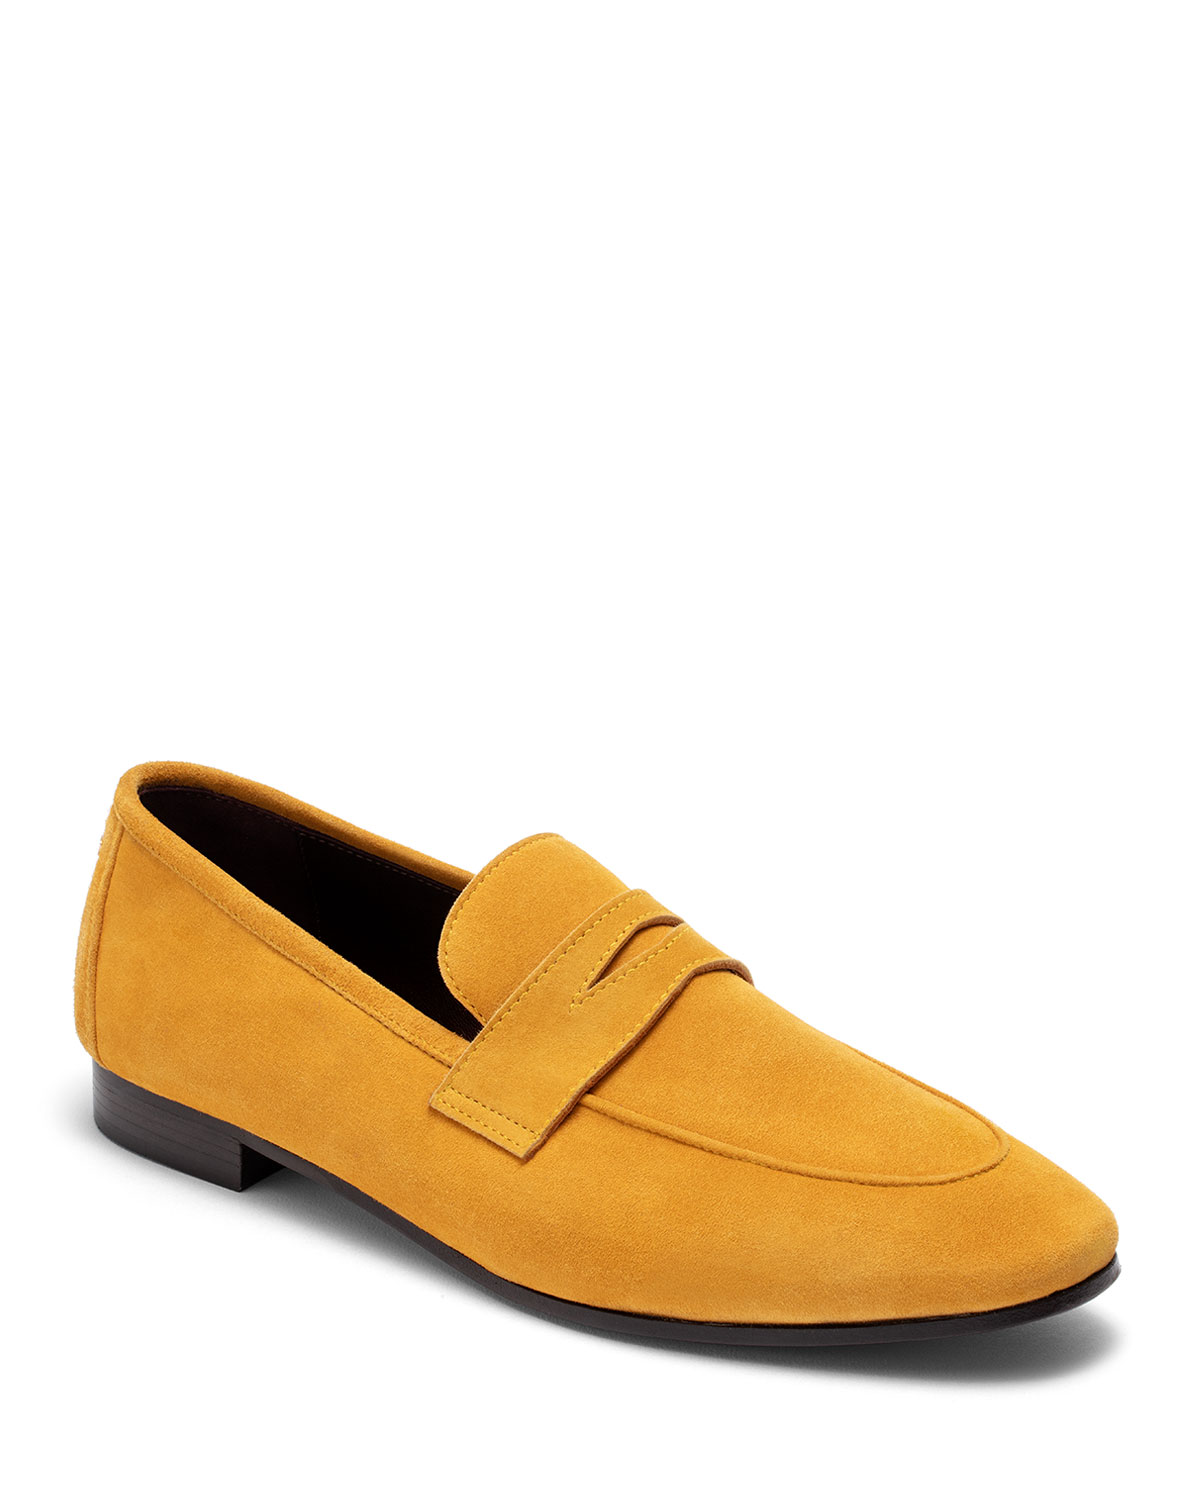 BOUGEOTTE Van Gogh Suede Penny Loafers in Yellow